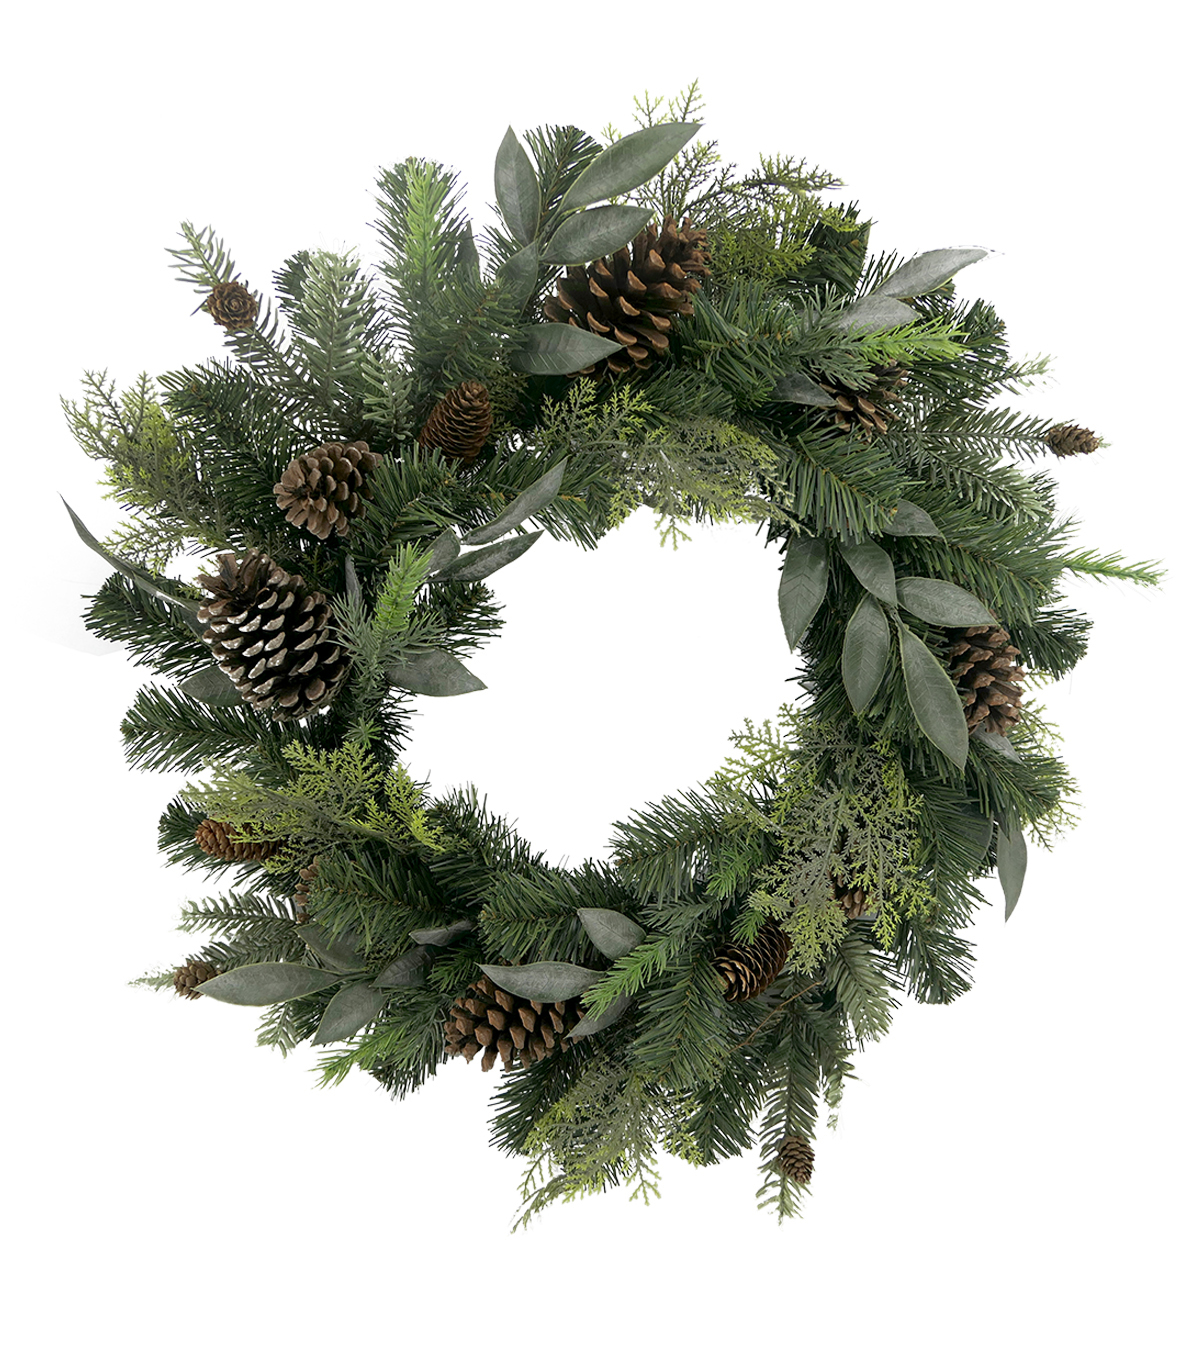 Handmade Holiday Christmas Greenery & Pinecone Mixed Wreath